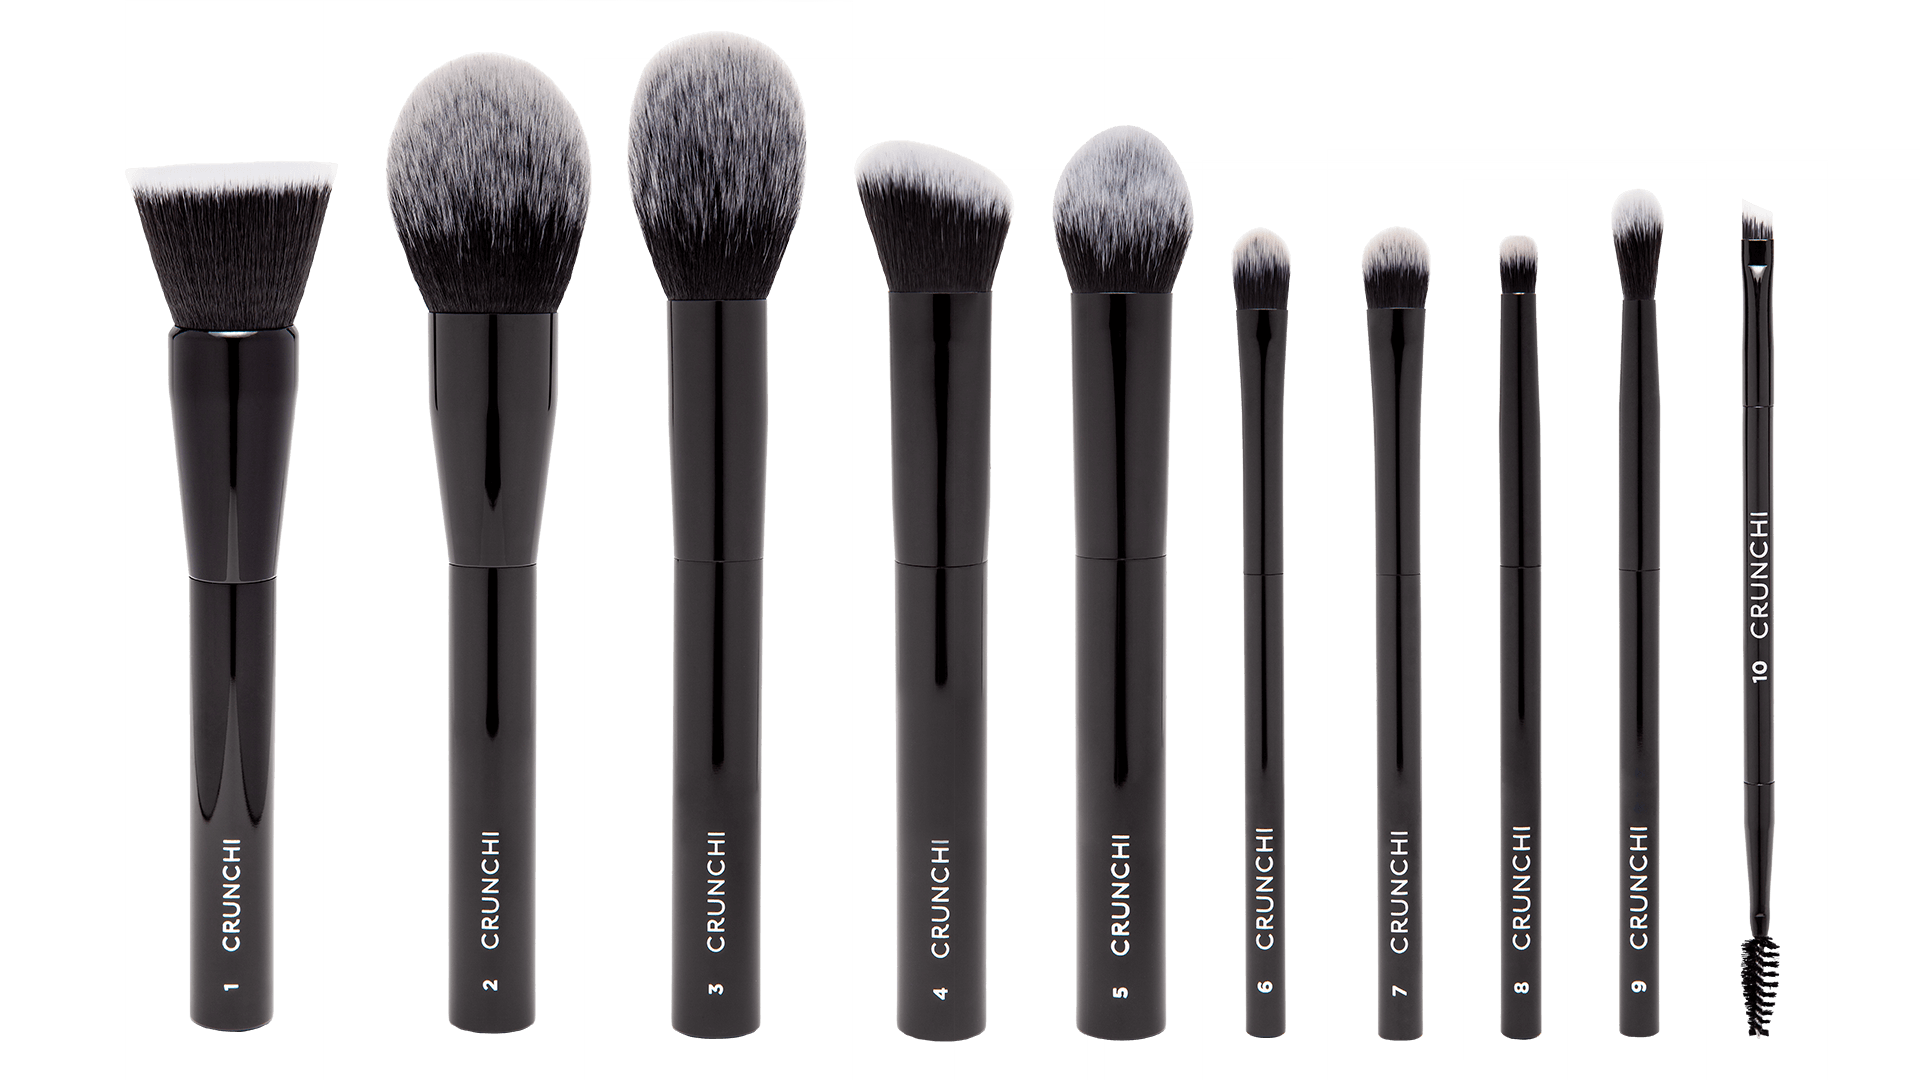 Selection of Crunchi Brushes